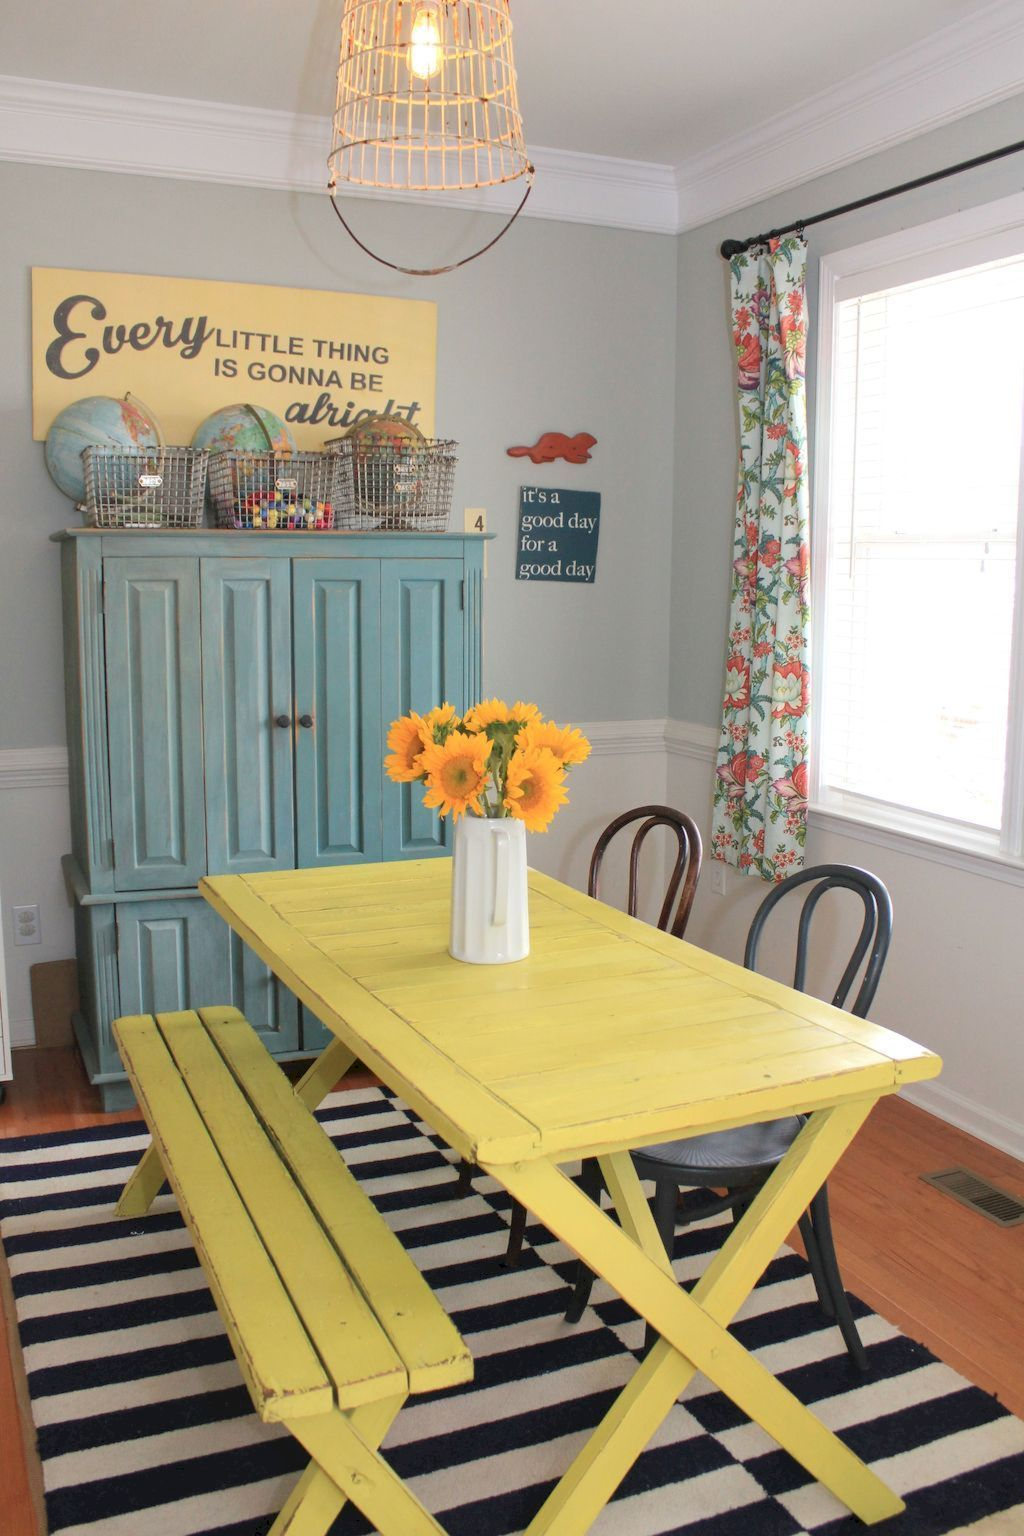 Eclectic home dining room inspired from beach home eating space rich of fresh vibes perfect for a recreational rooms update Image 22